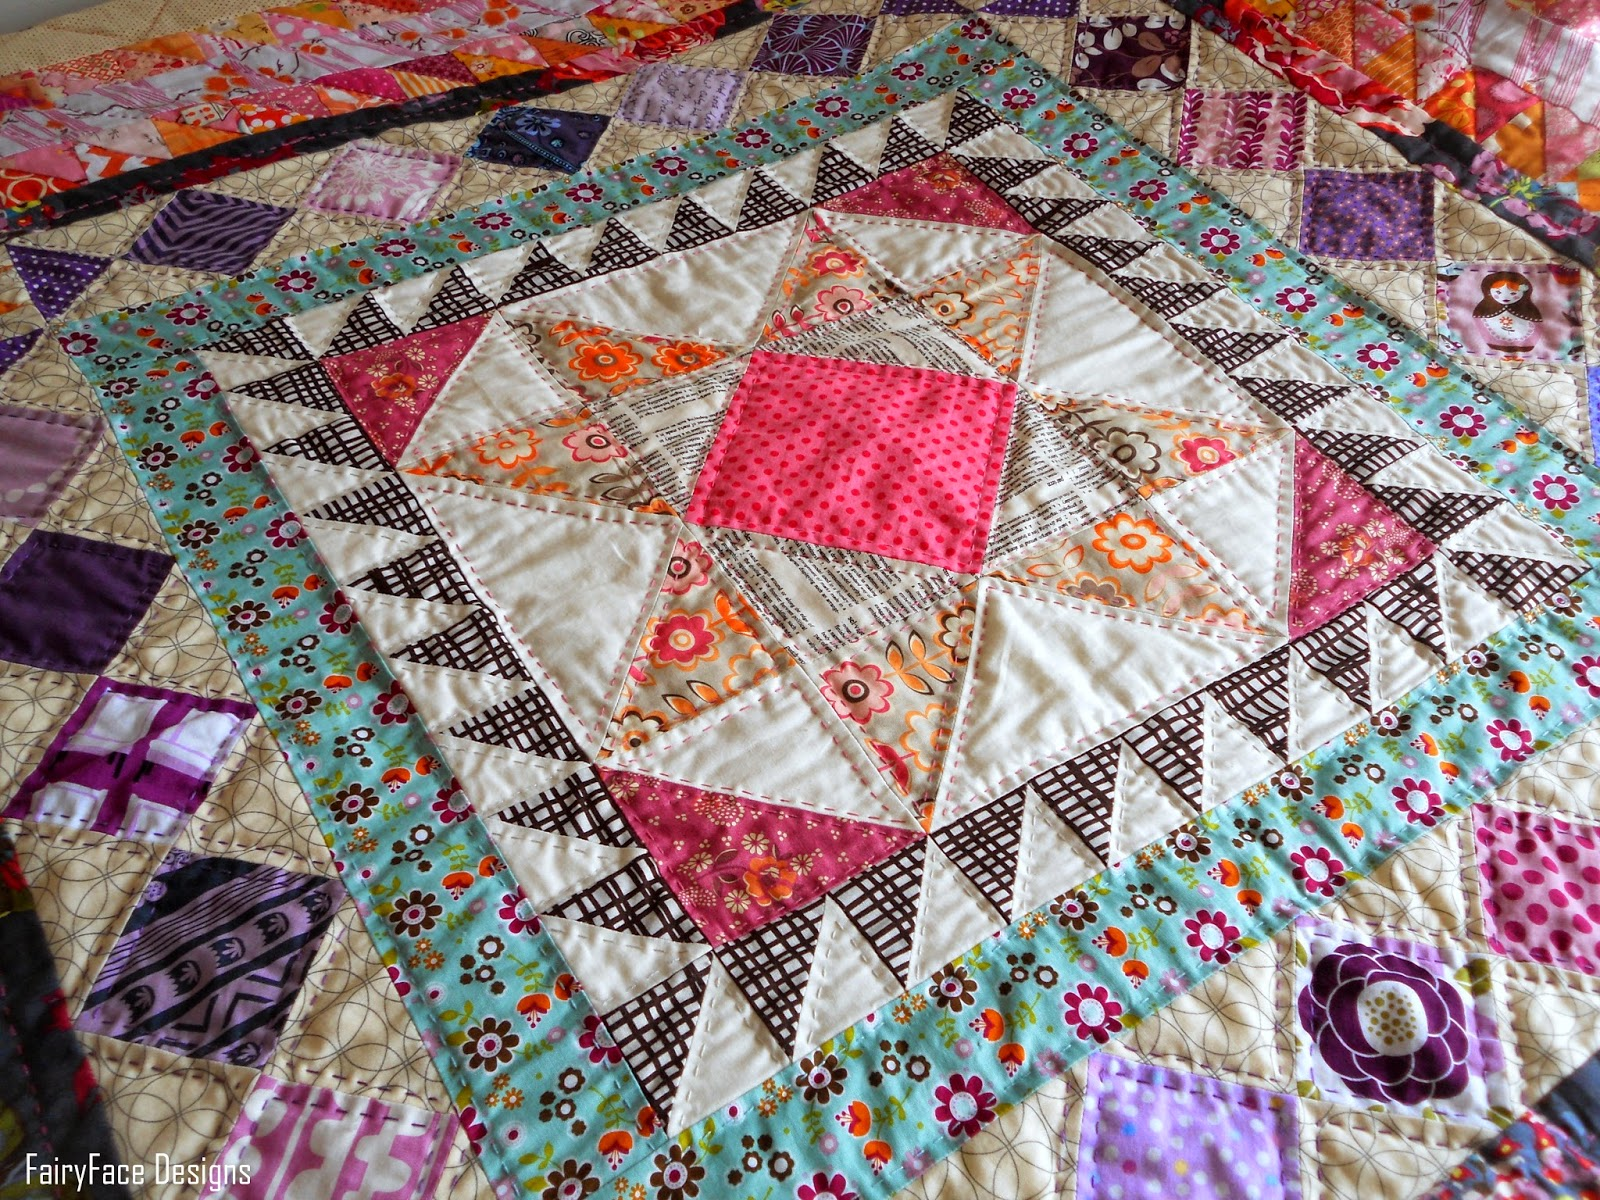 FairyFace Designs: A Made to Measure Medallion Finish : hand quilted quilts - Adamdwight.com